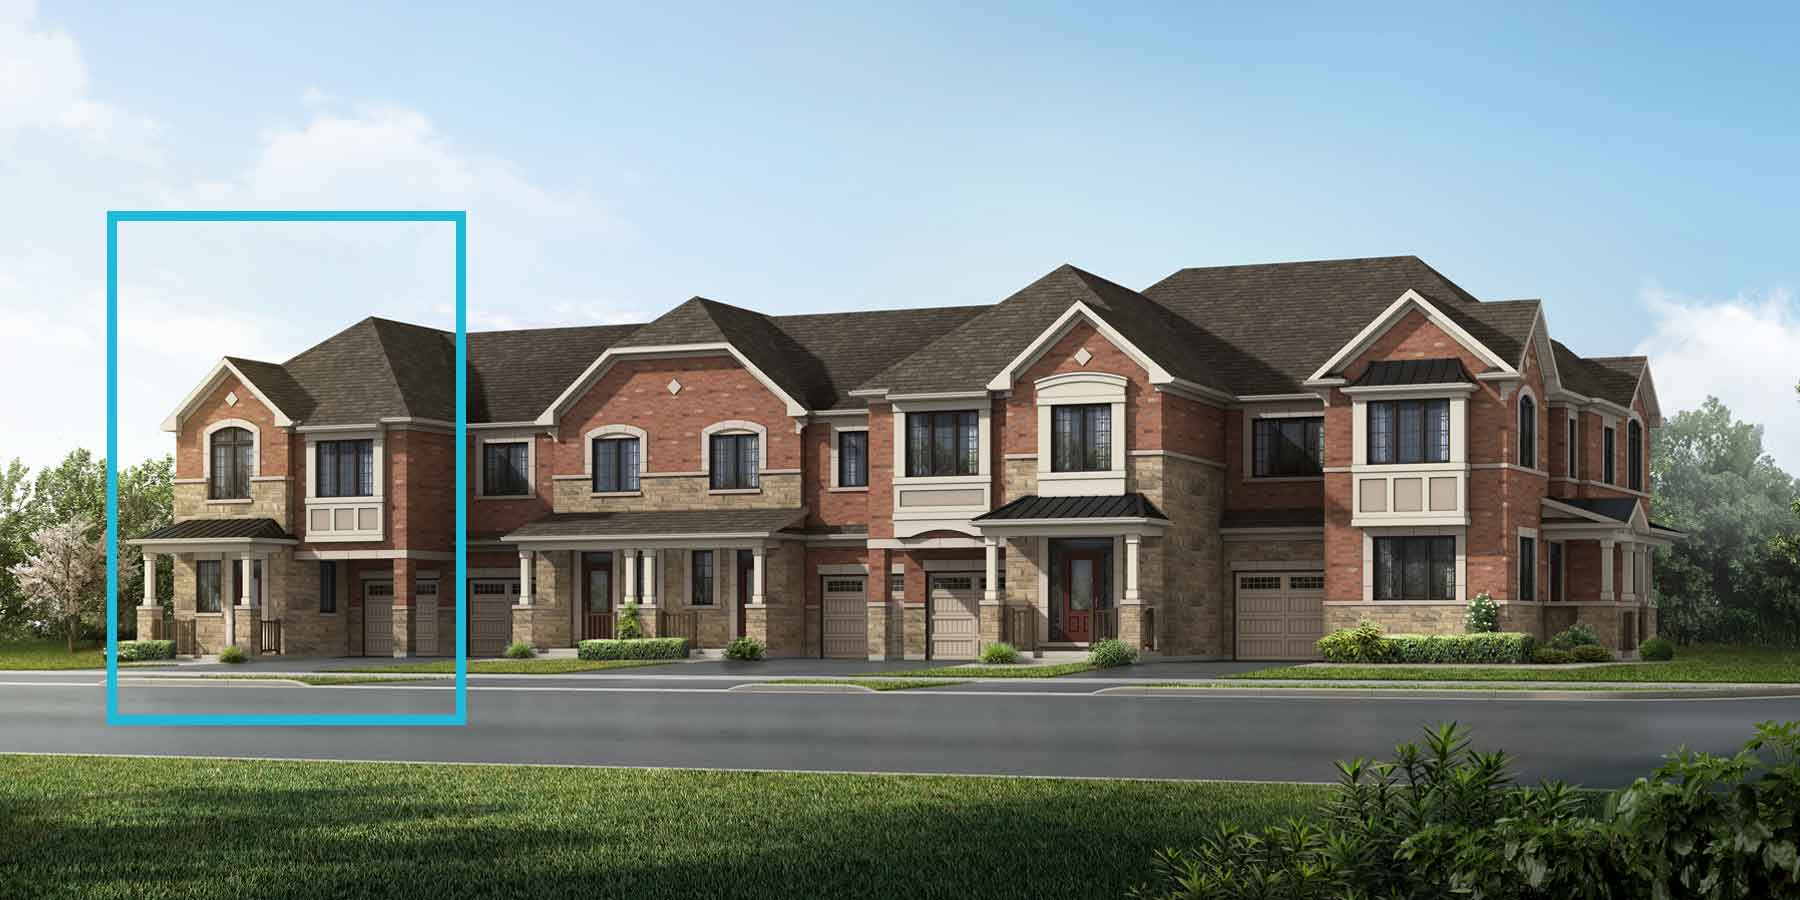 Mint End Plan TownHomes at Springwater in Markham Ontario by Mattamy Homes